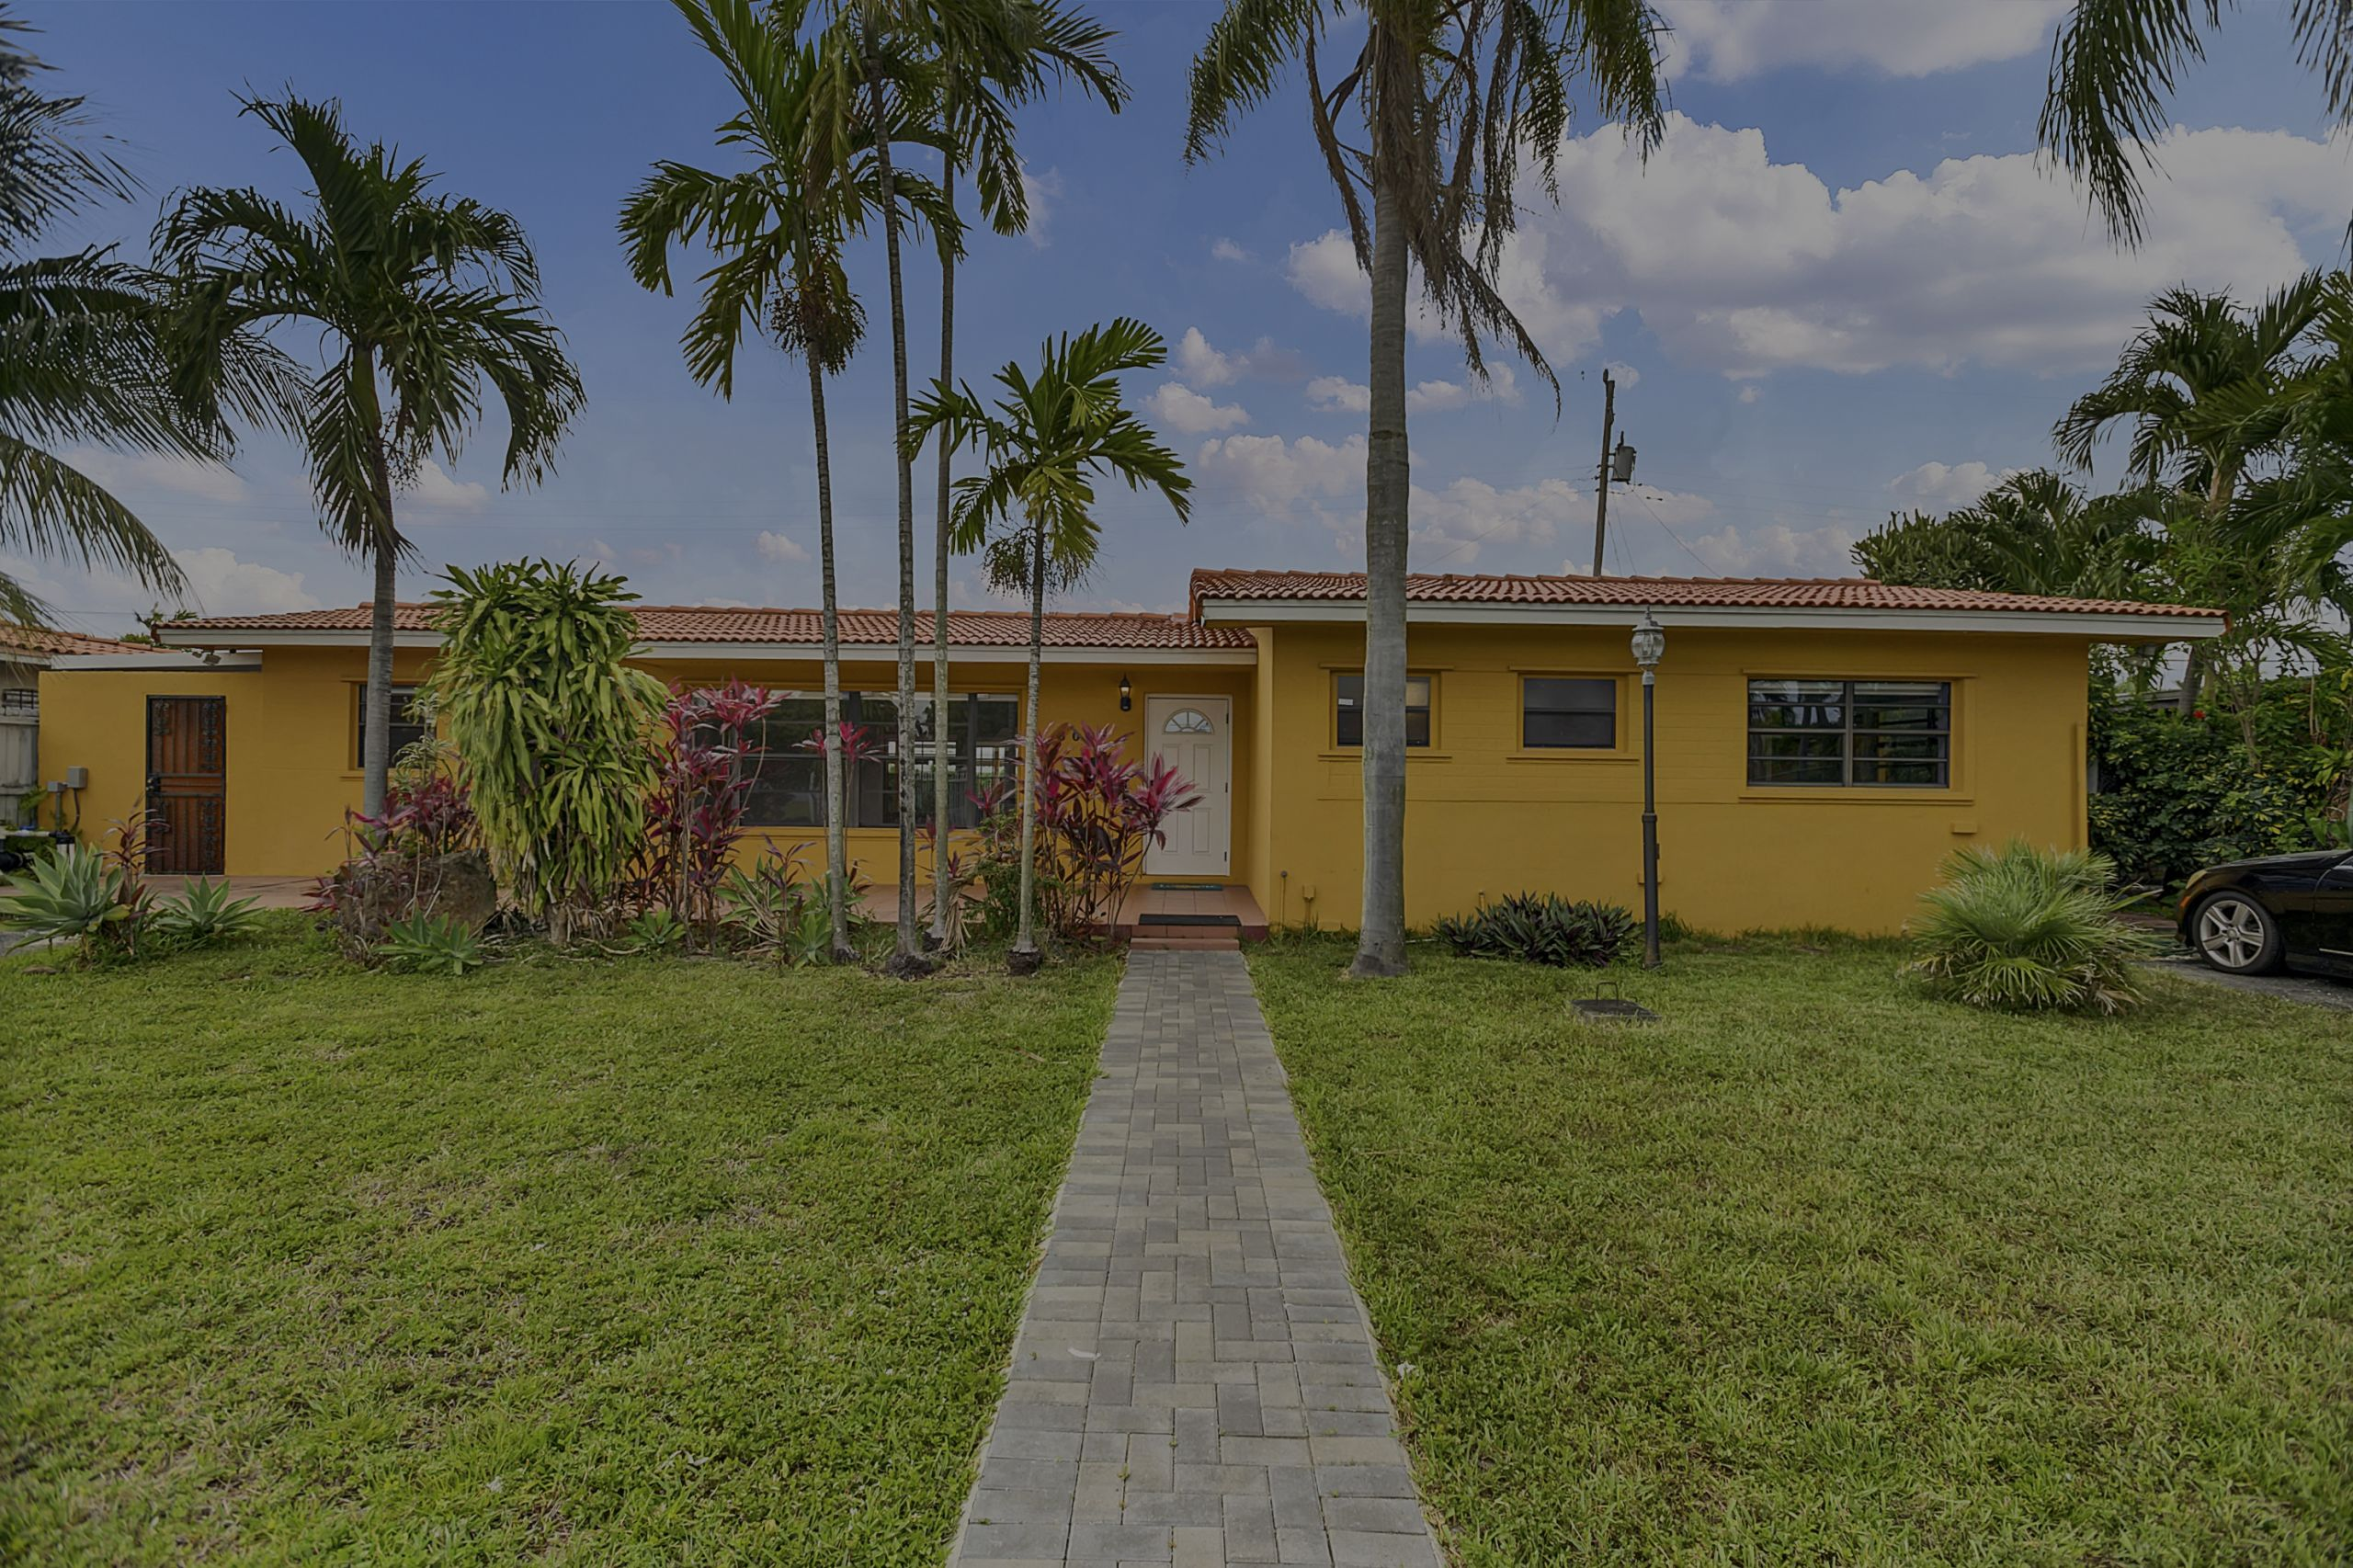 Luminous and Spacious 3 Bedroom, 2 Bathroom home with new flooring and updated kitchen and bathrooms.